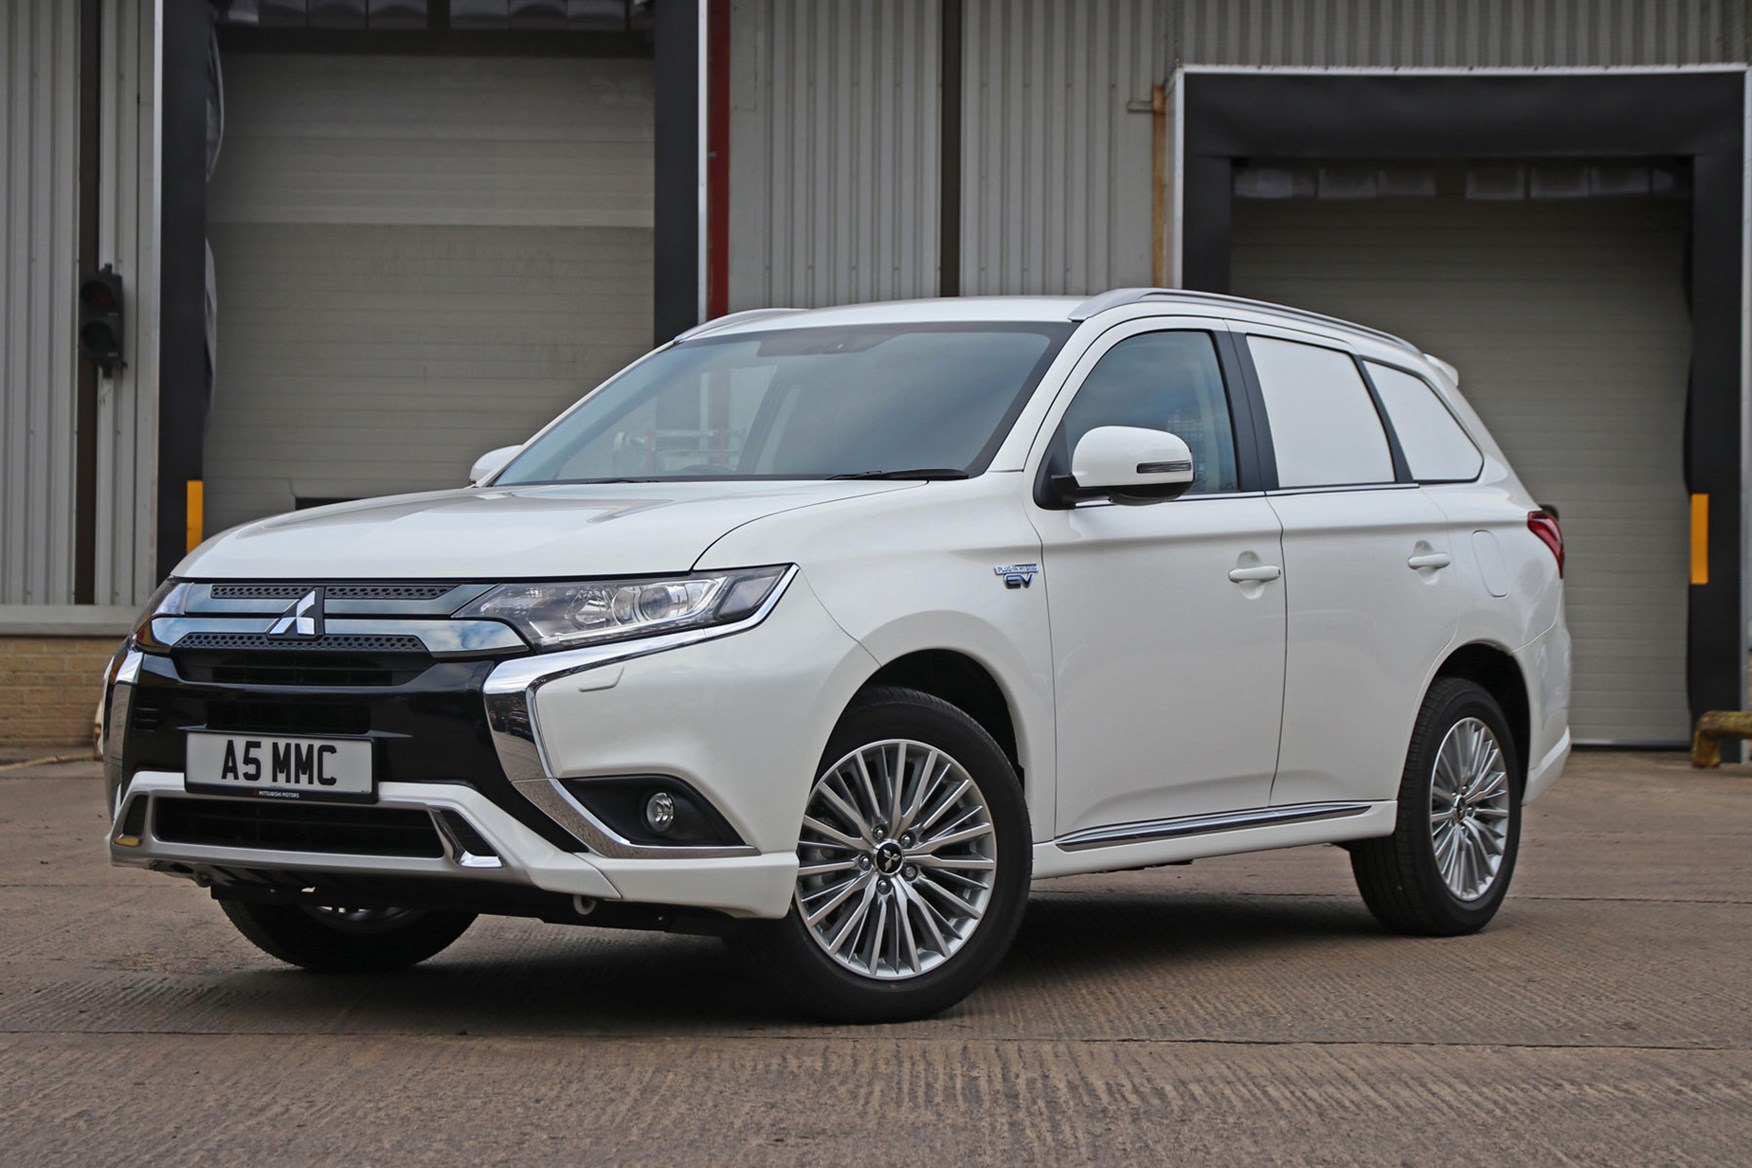 Mitsubishi Outlander Commercial 4x4 van review - 2019 PHEV front view, white